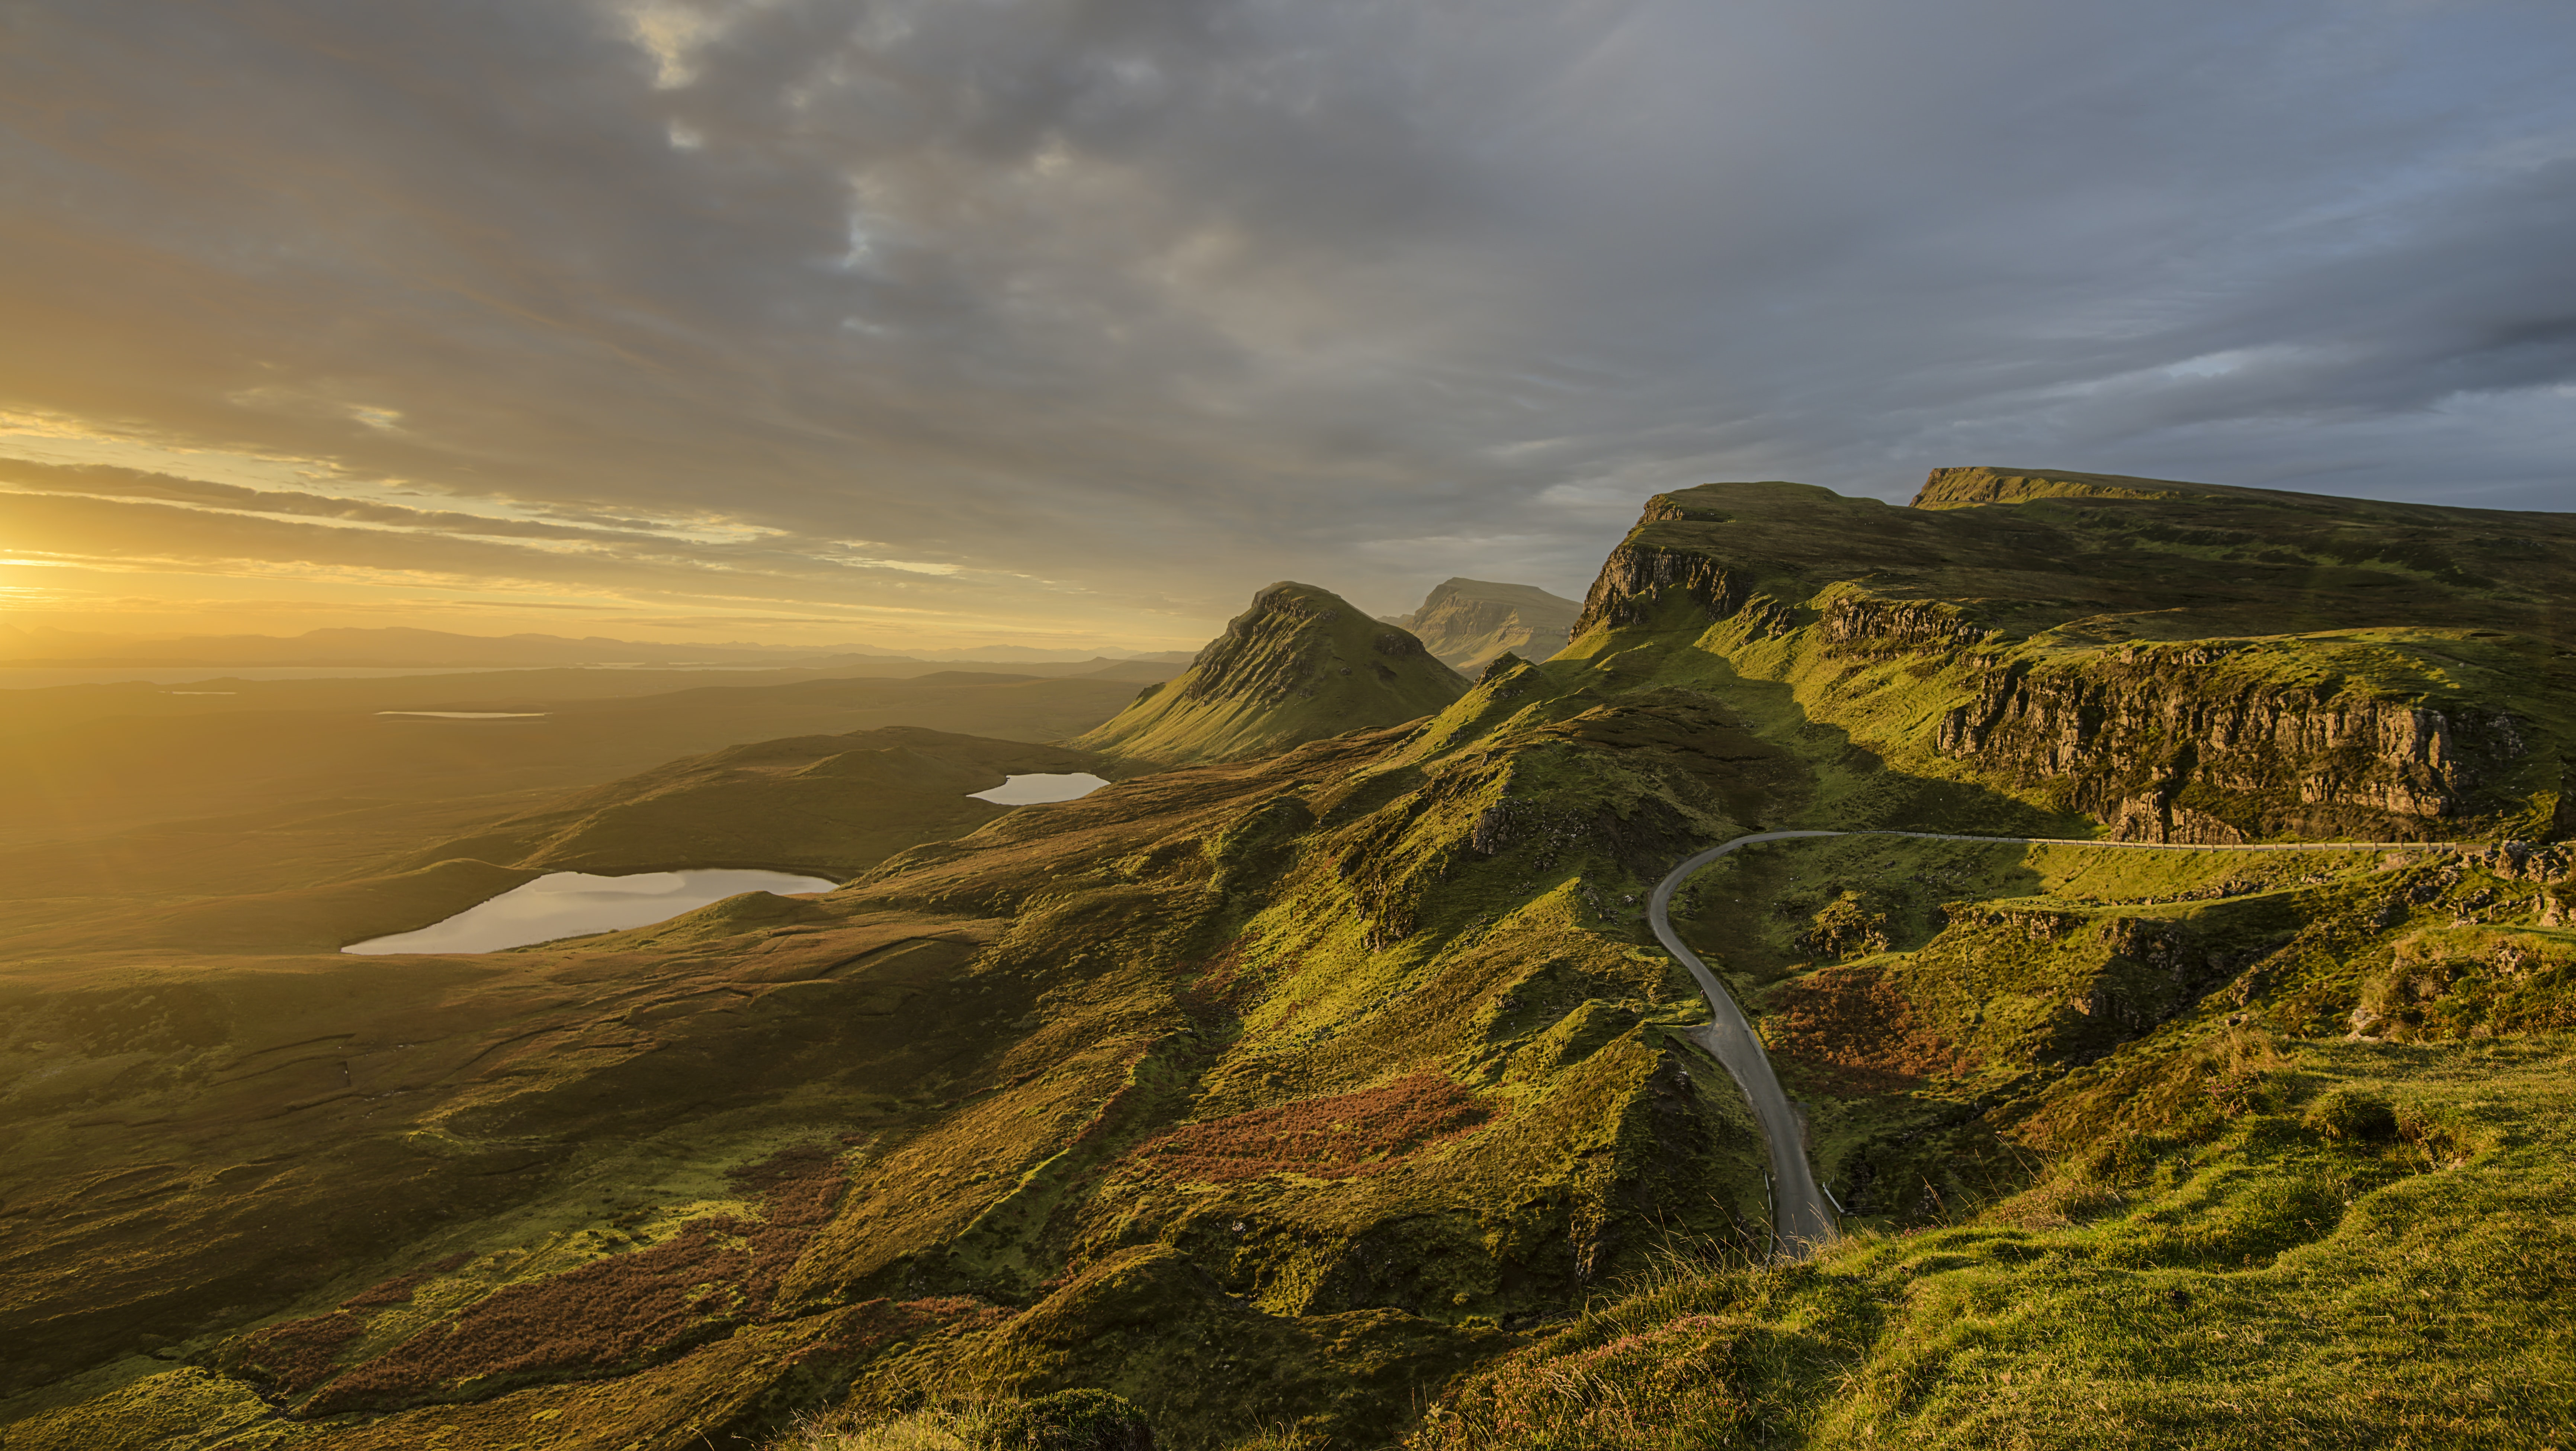 A cloudy sunset over the mountainous hills of Skye